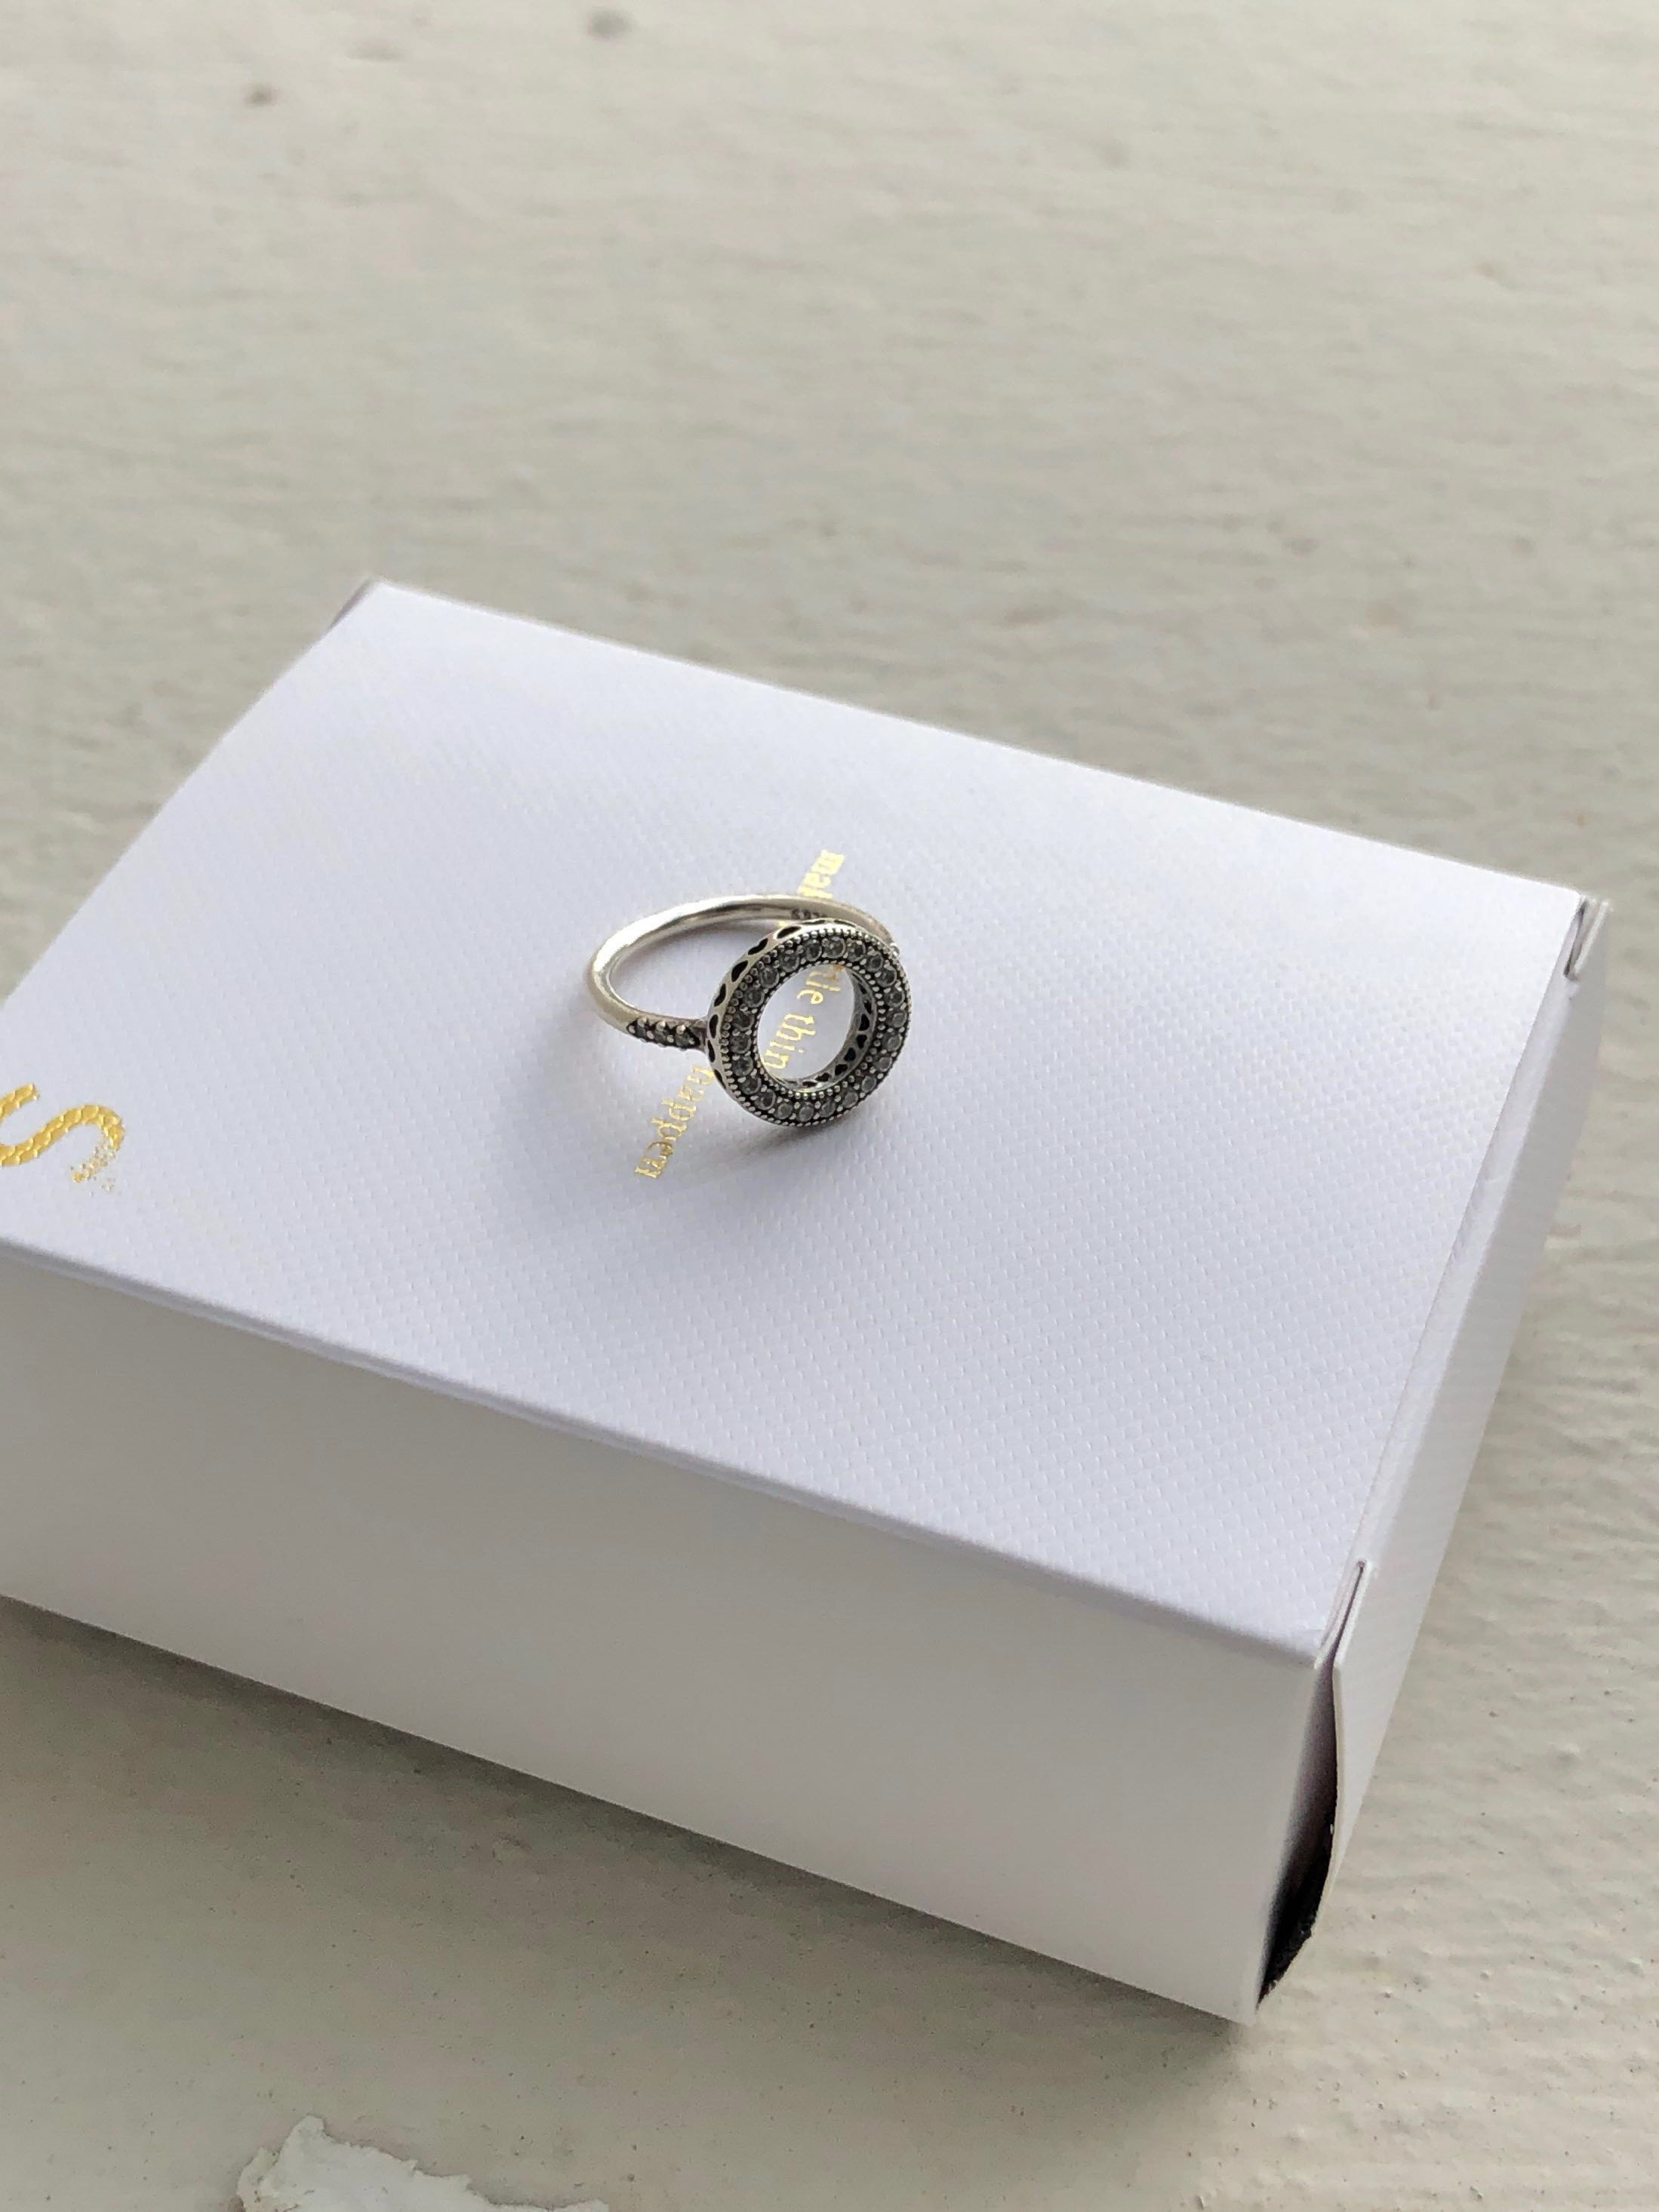 c86769af5 Pandora Ring size 48 silver, Women's Fashion, Jewellery, Rings on ...